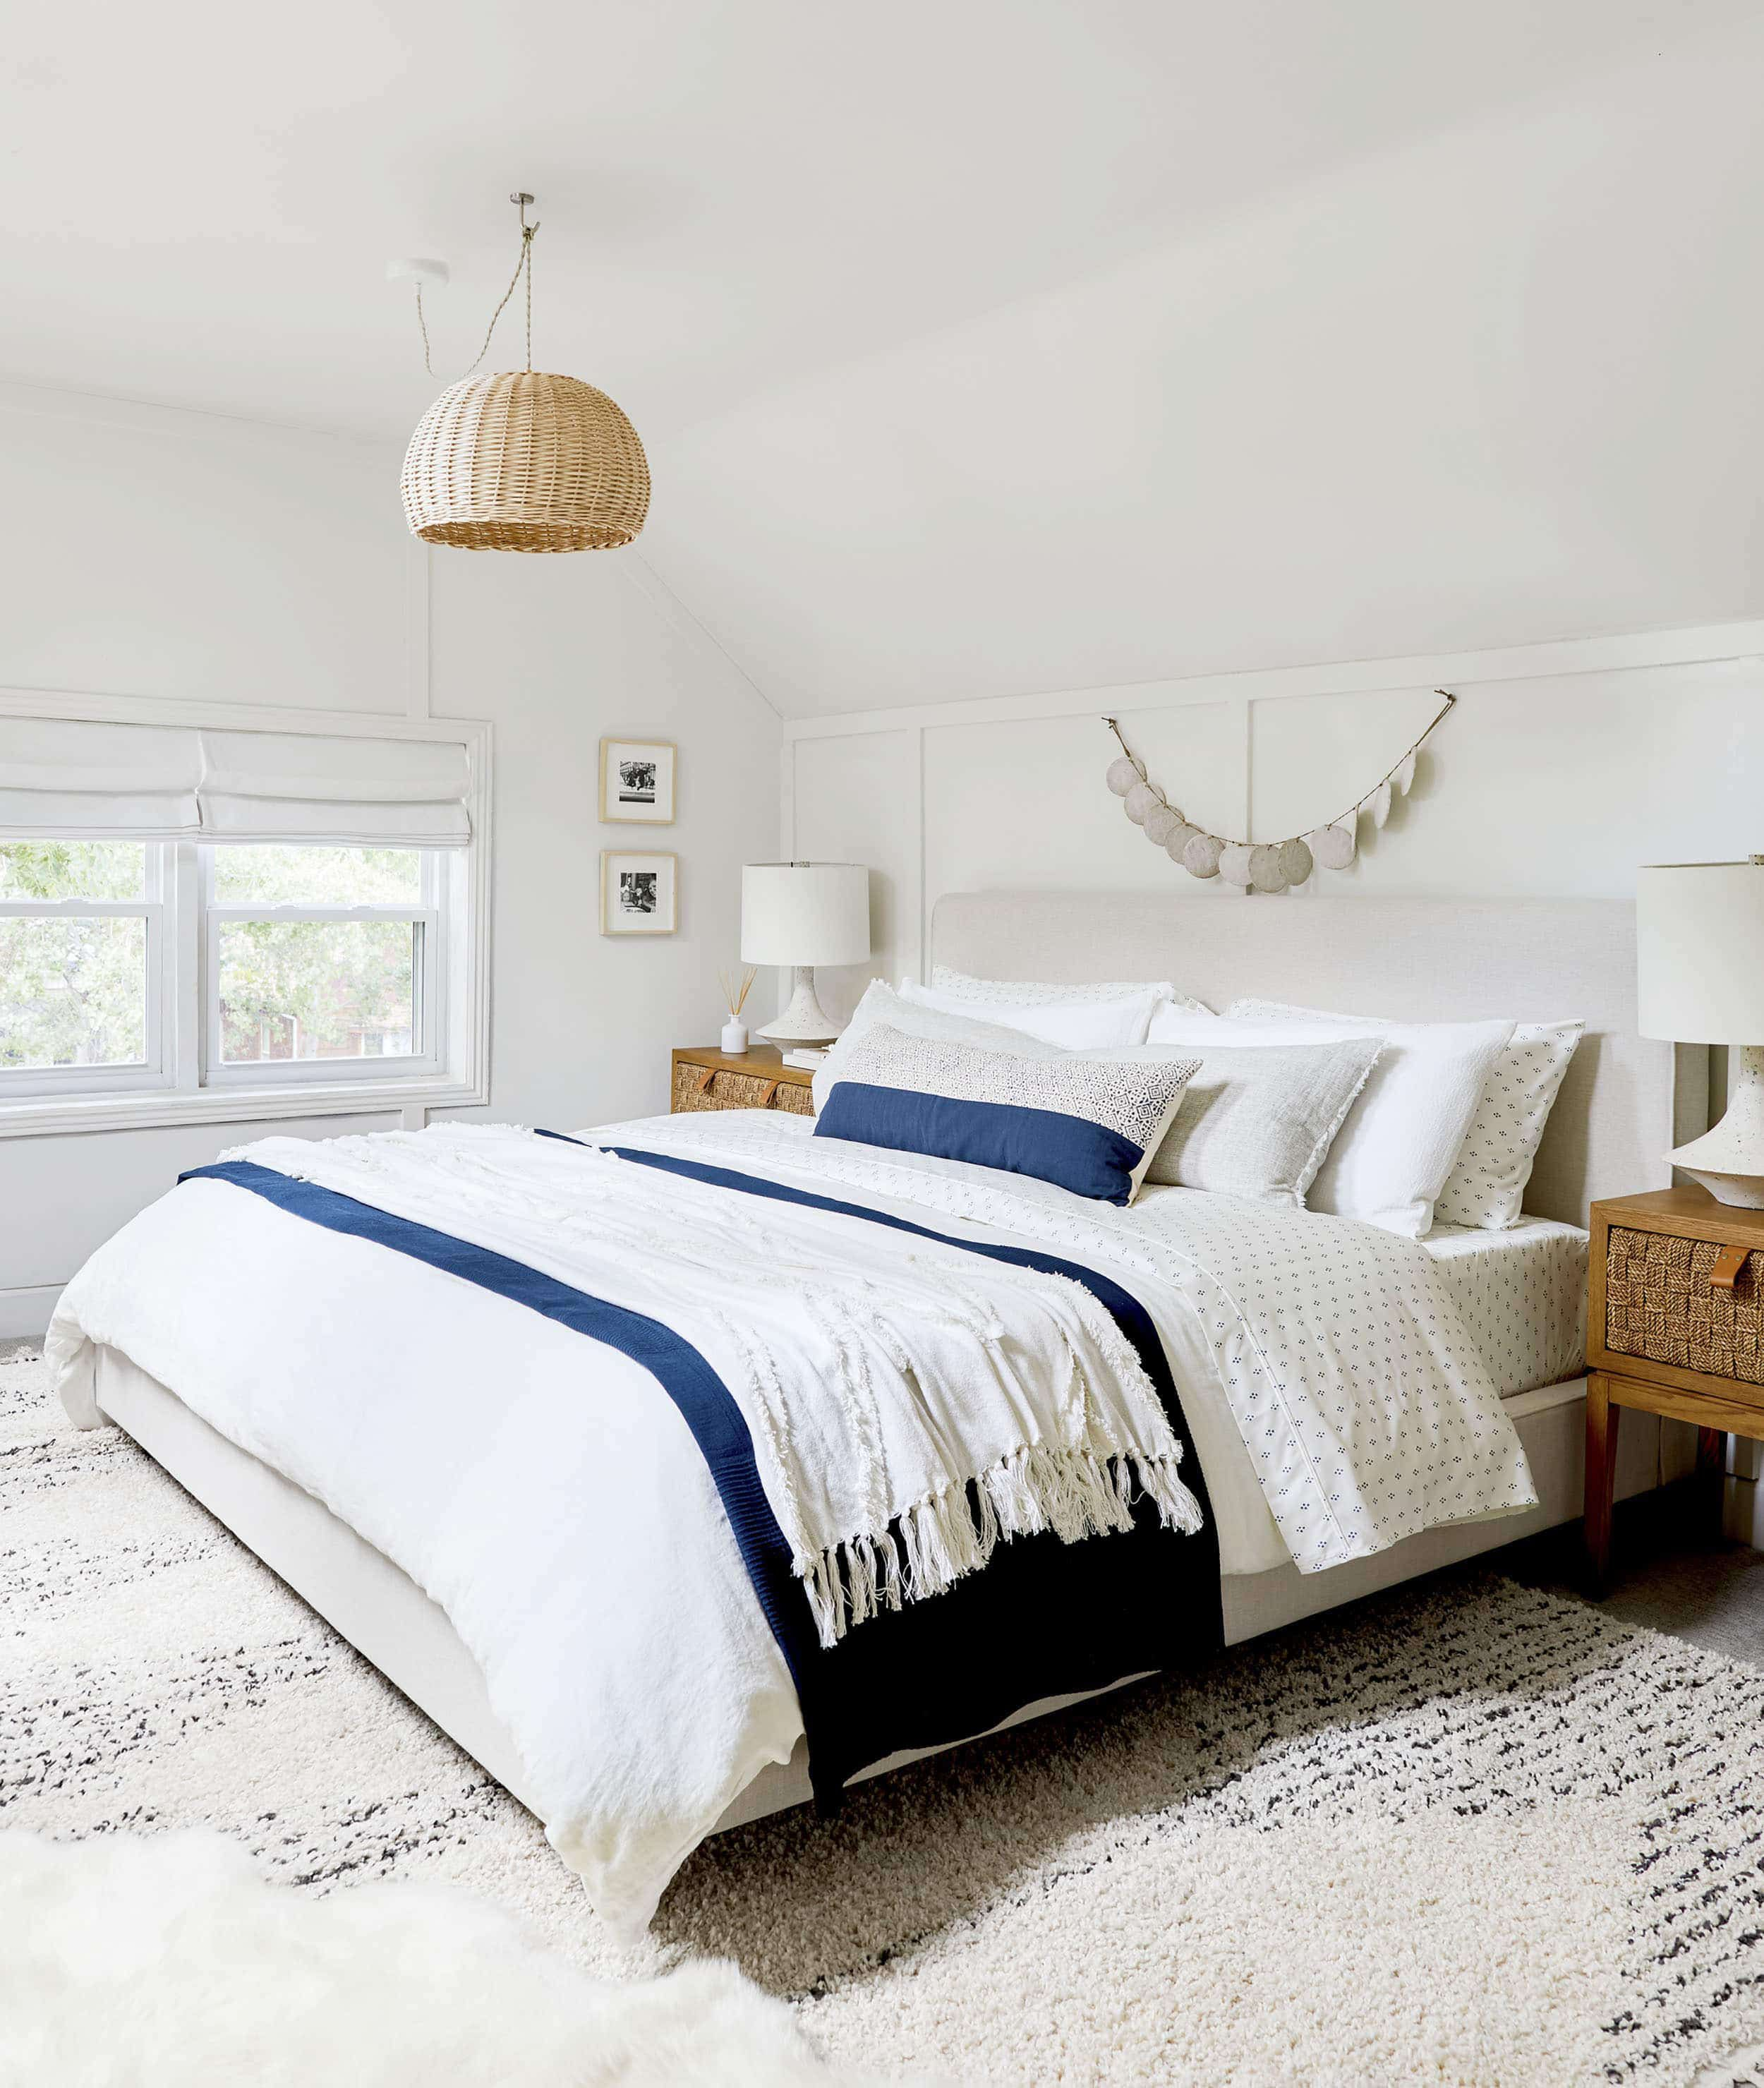 The Right Way To Make Your Bed Our 5 Best Formulas Emily Henderson Ways To Make Your Bed Stylish Beds Cozy Master Bedroom My bedroom different ways